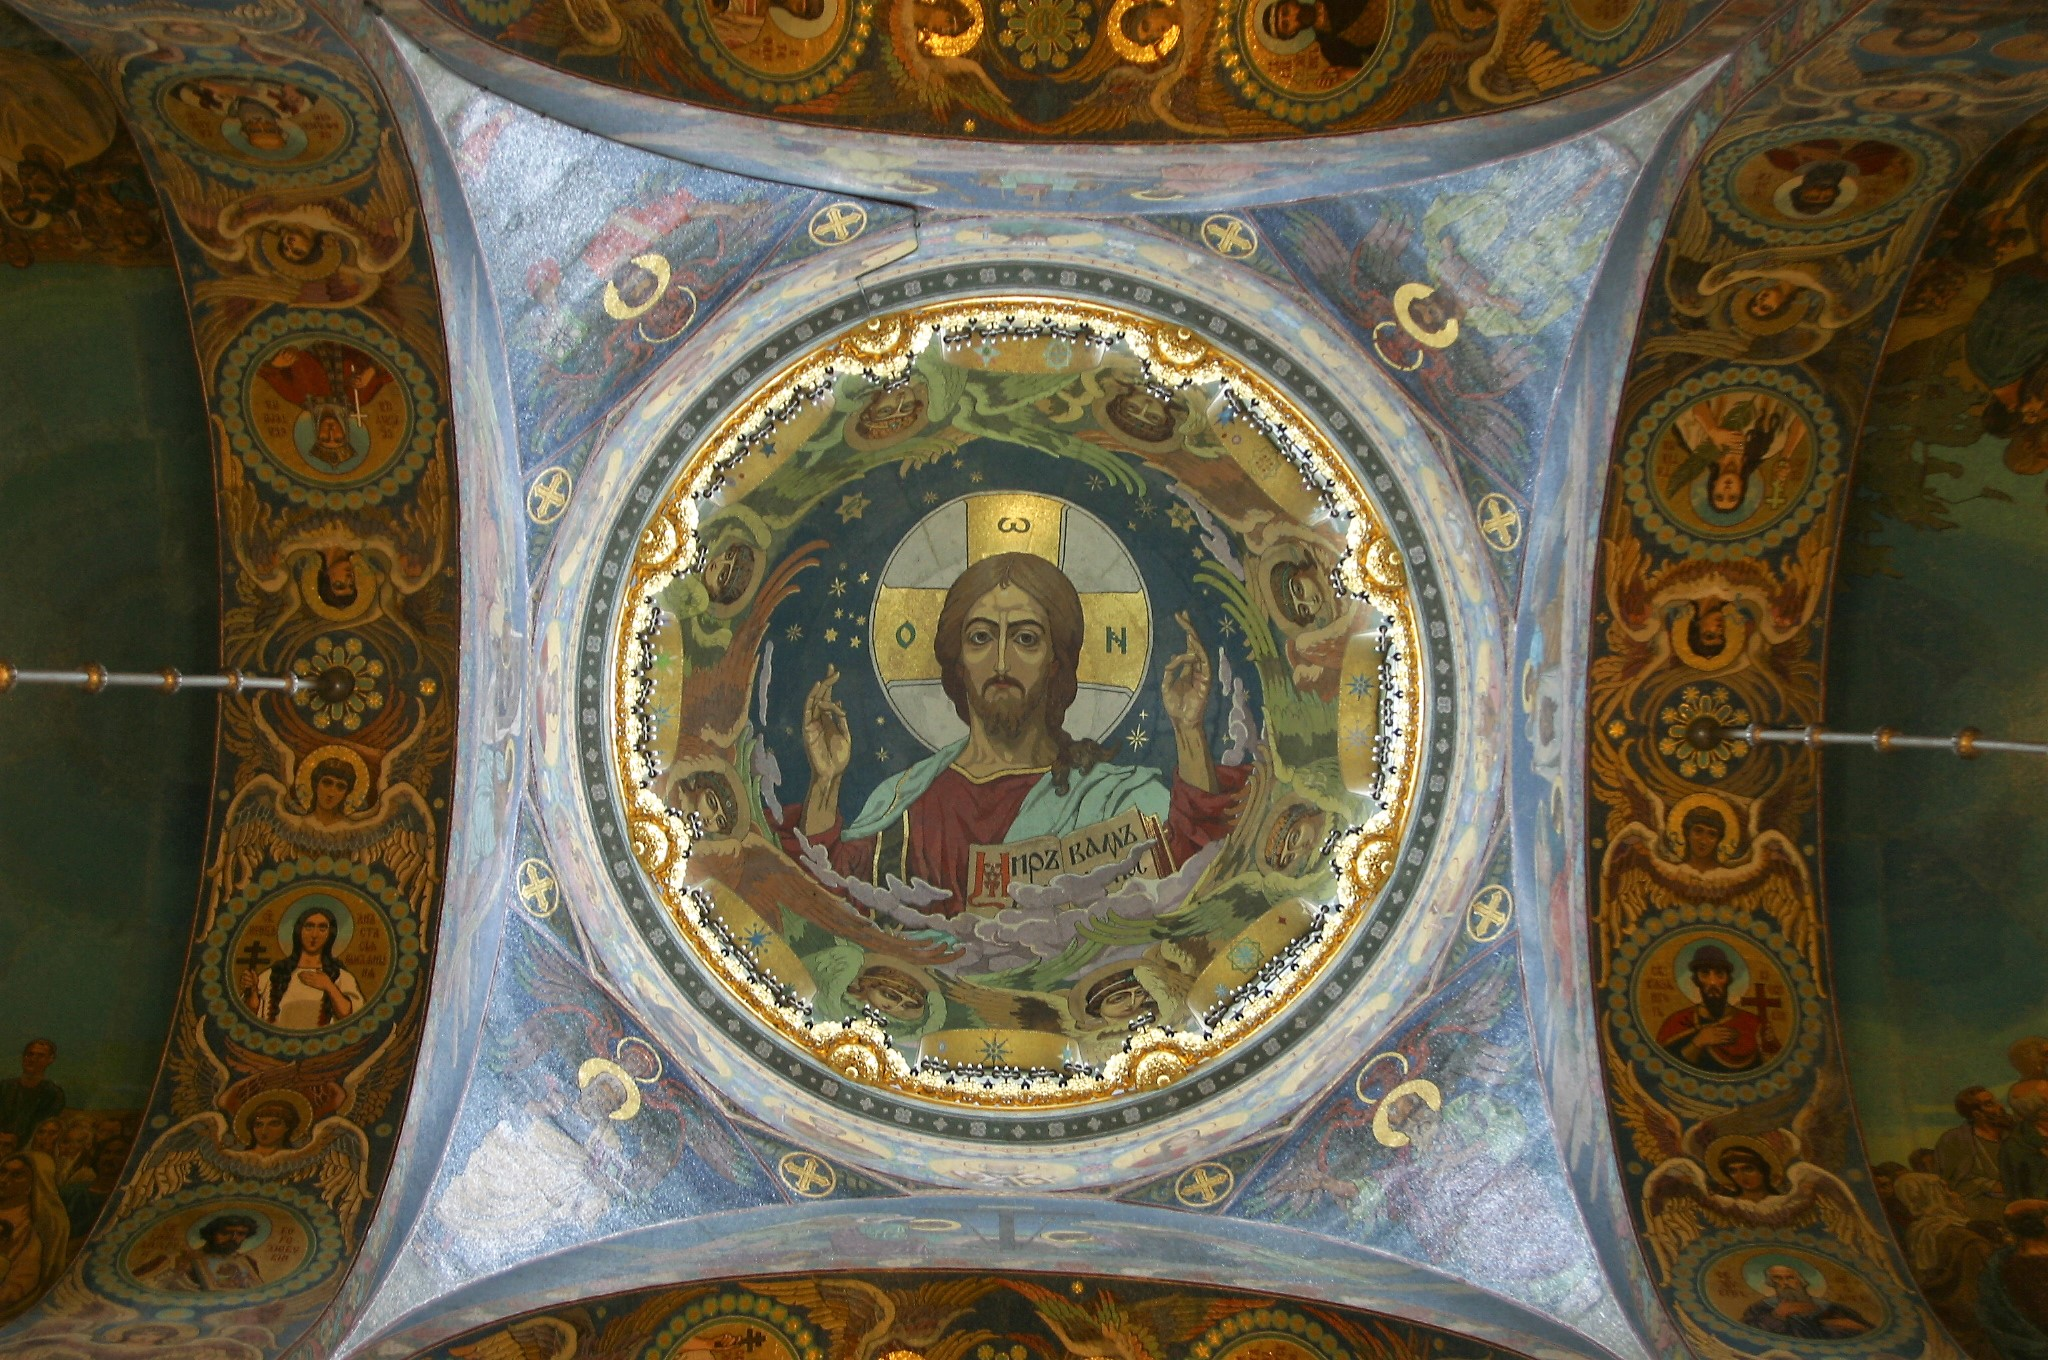 The main dome's mosaic ceiling.